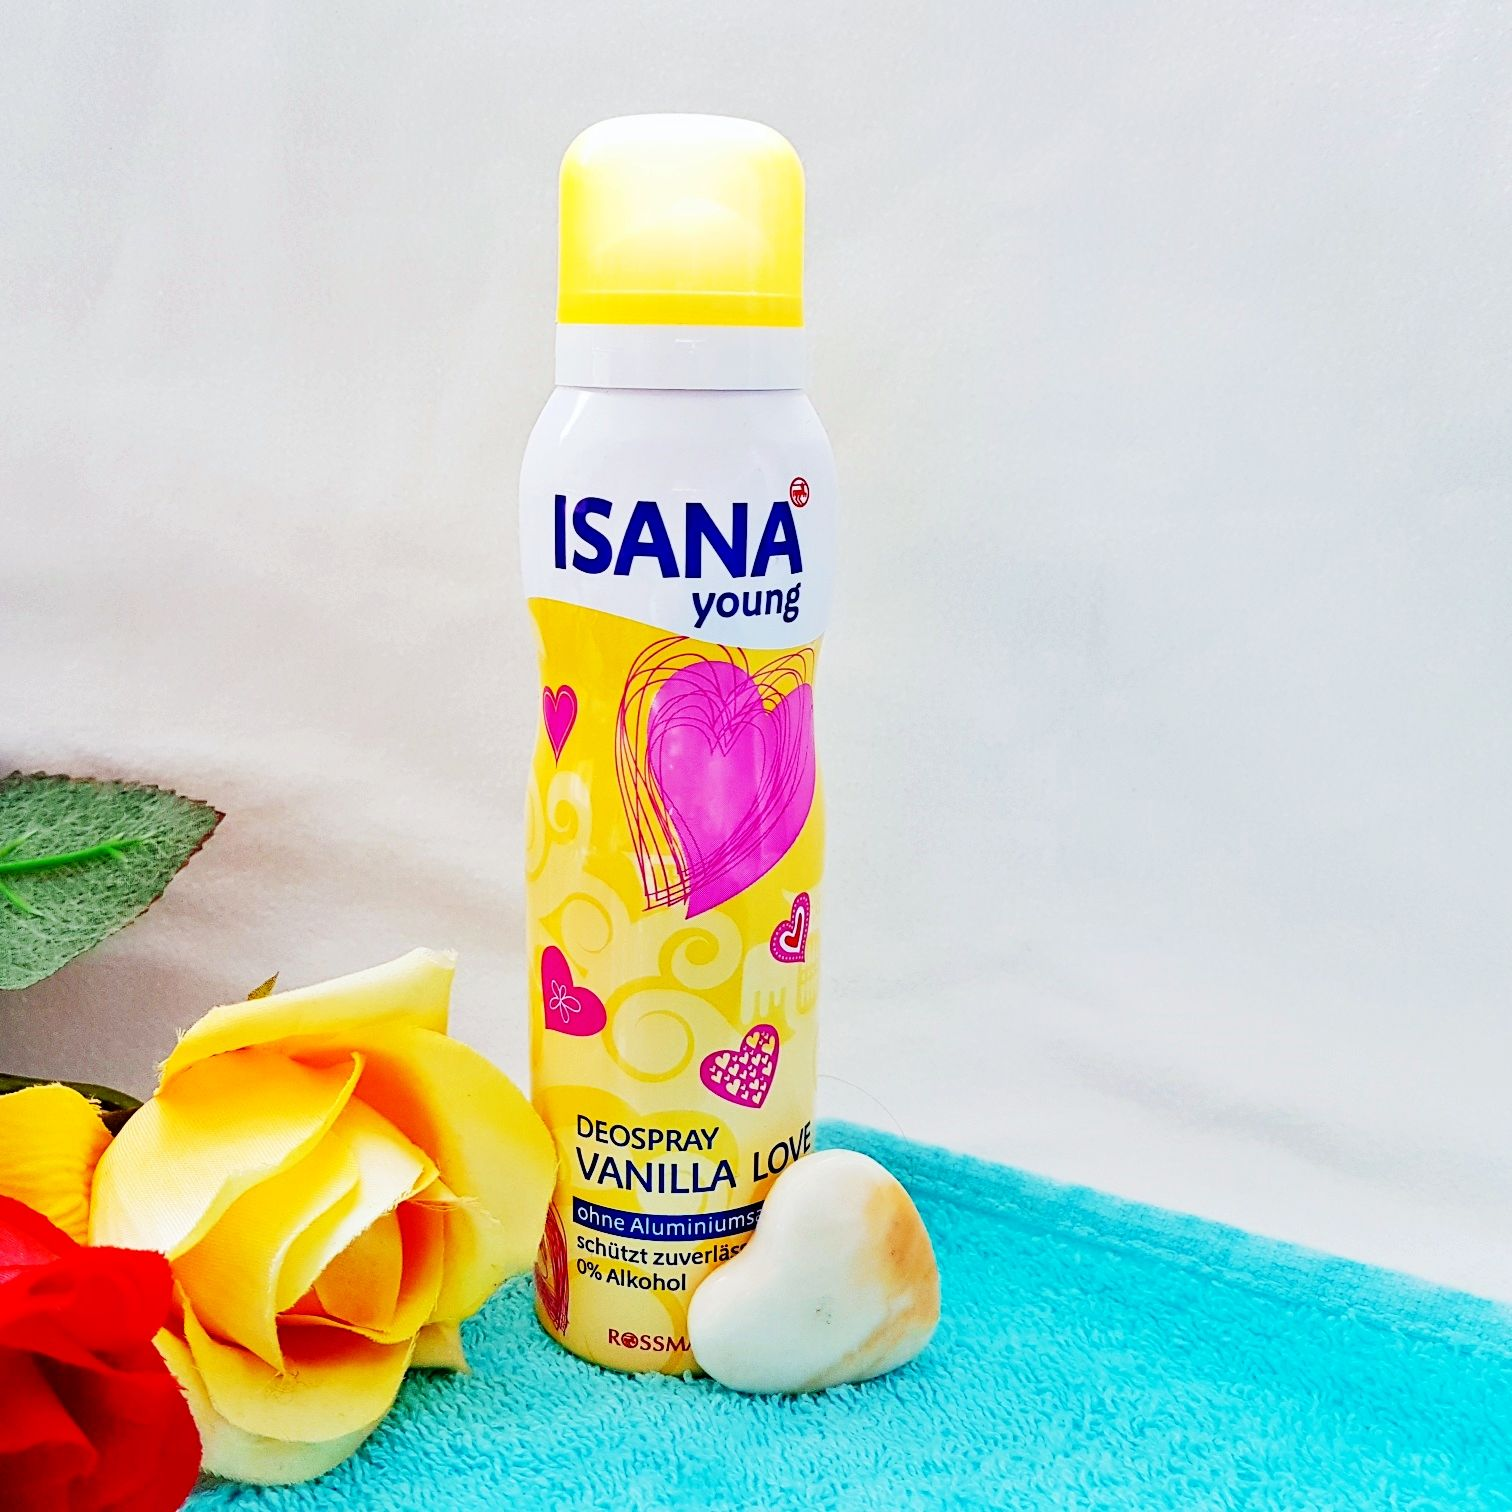 Isana Young Deospray Vanilla Love